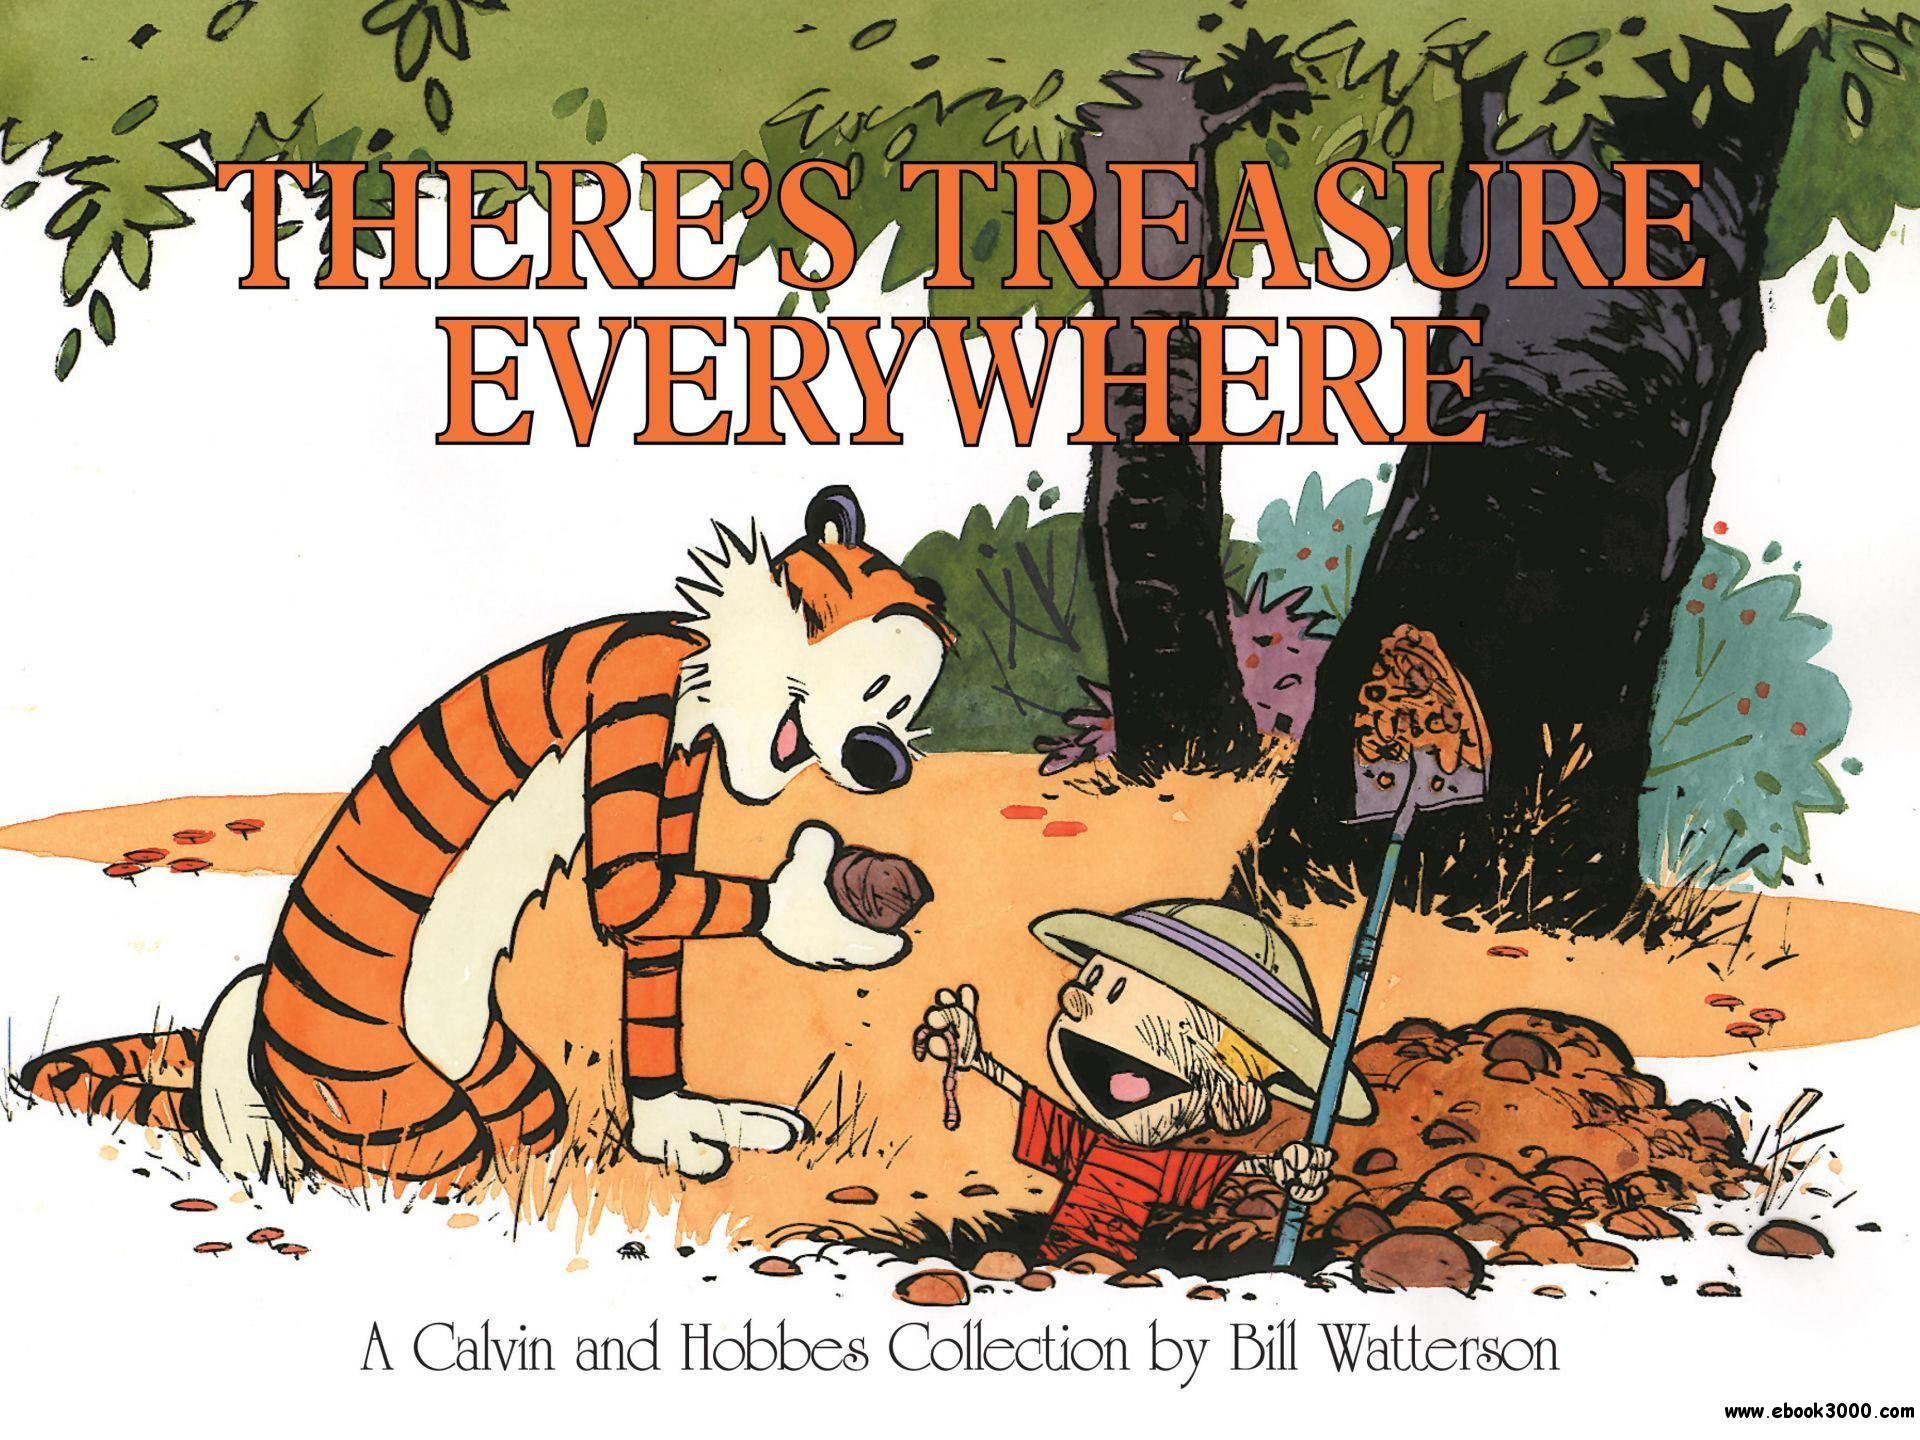 Calvin and hobbes ebook download - careersuccesstoolbox.com